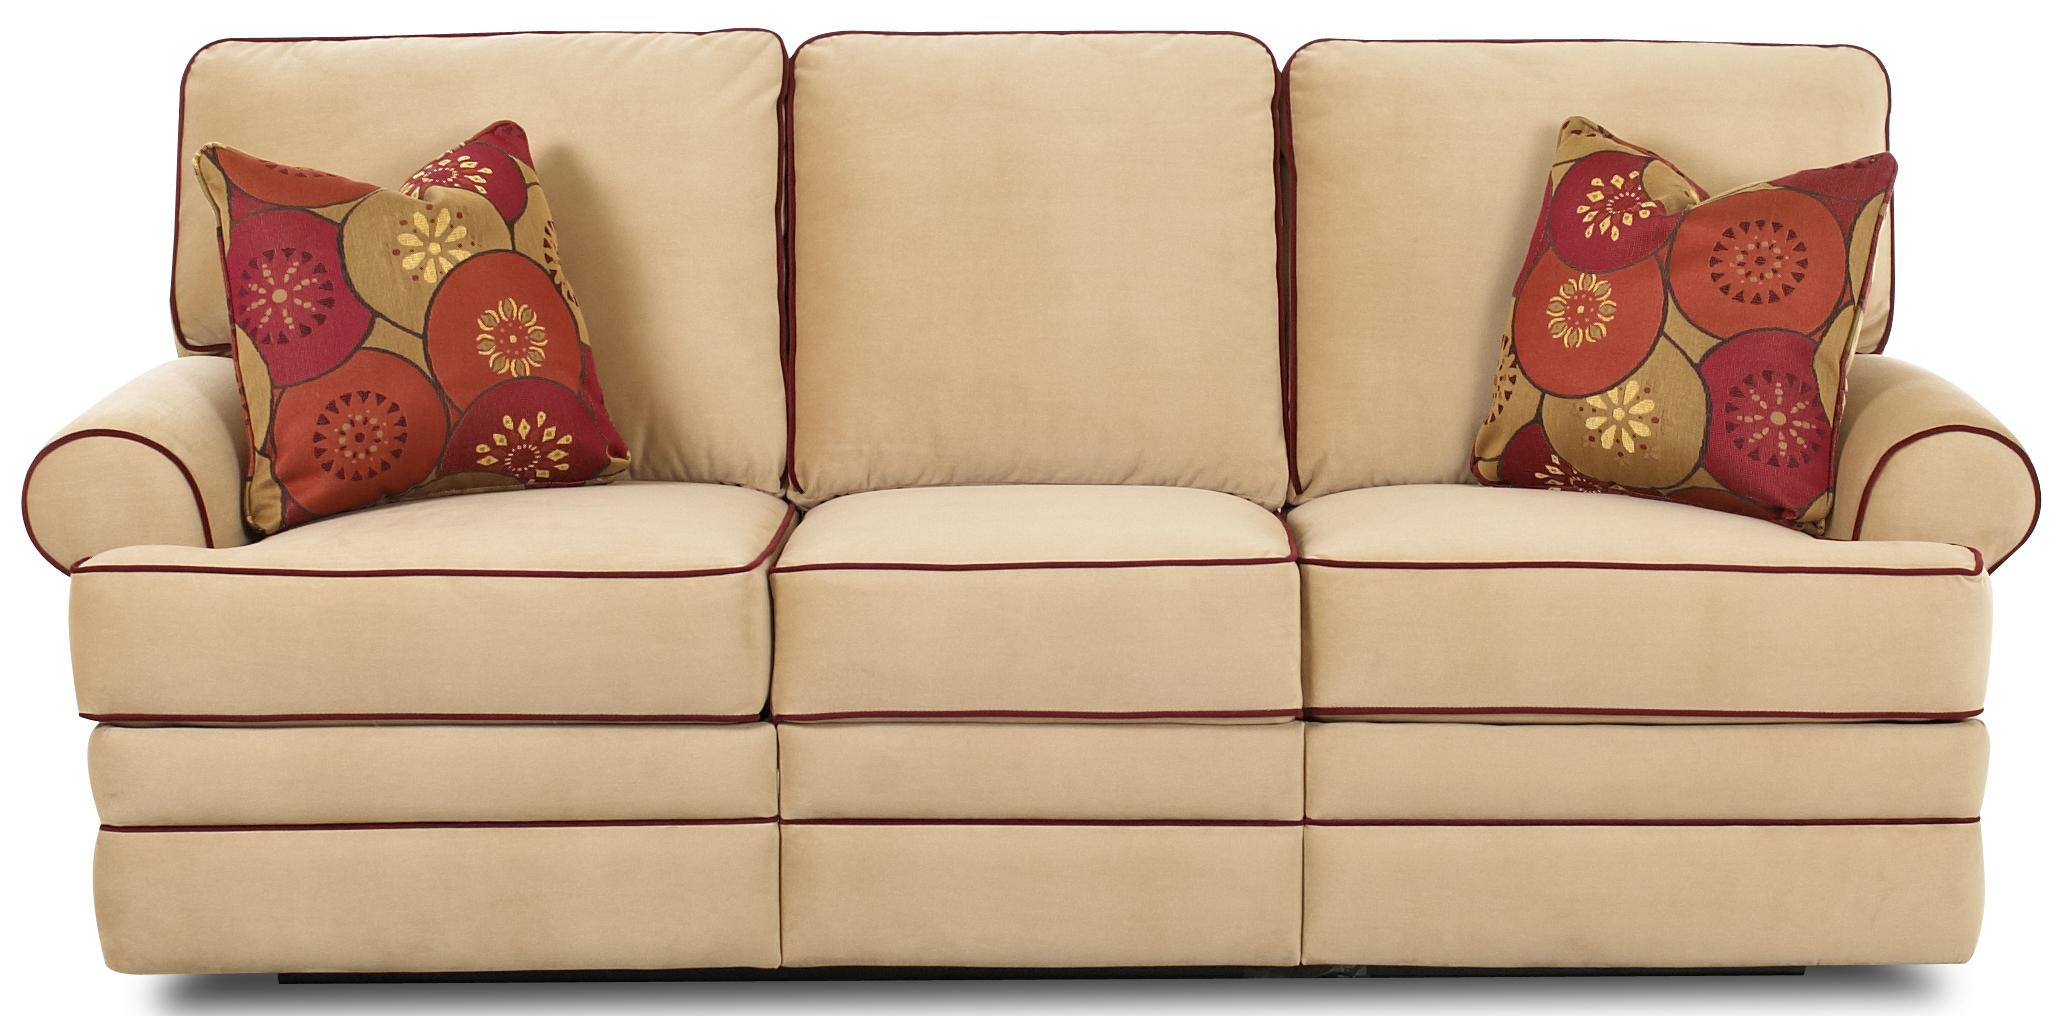 Belleview Power Reclining Sofa by Klaussner at Johnny Janosik